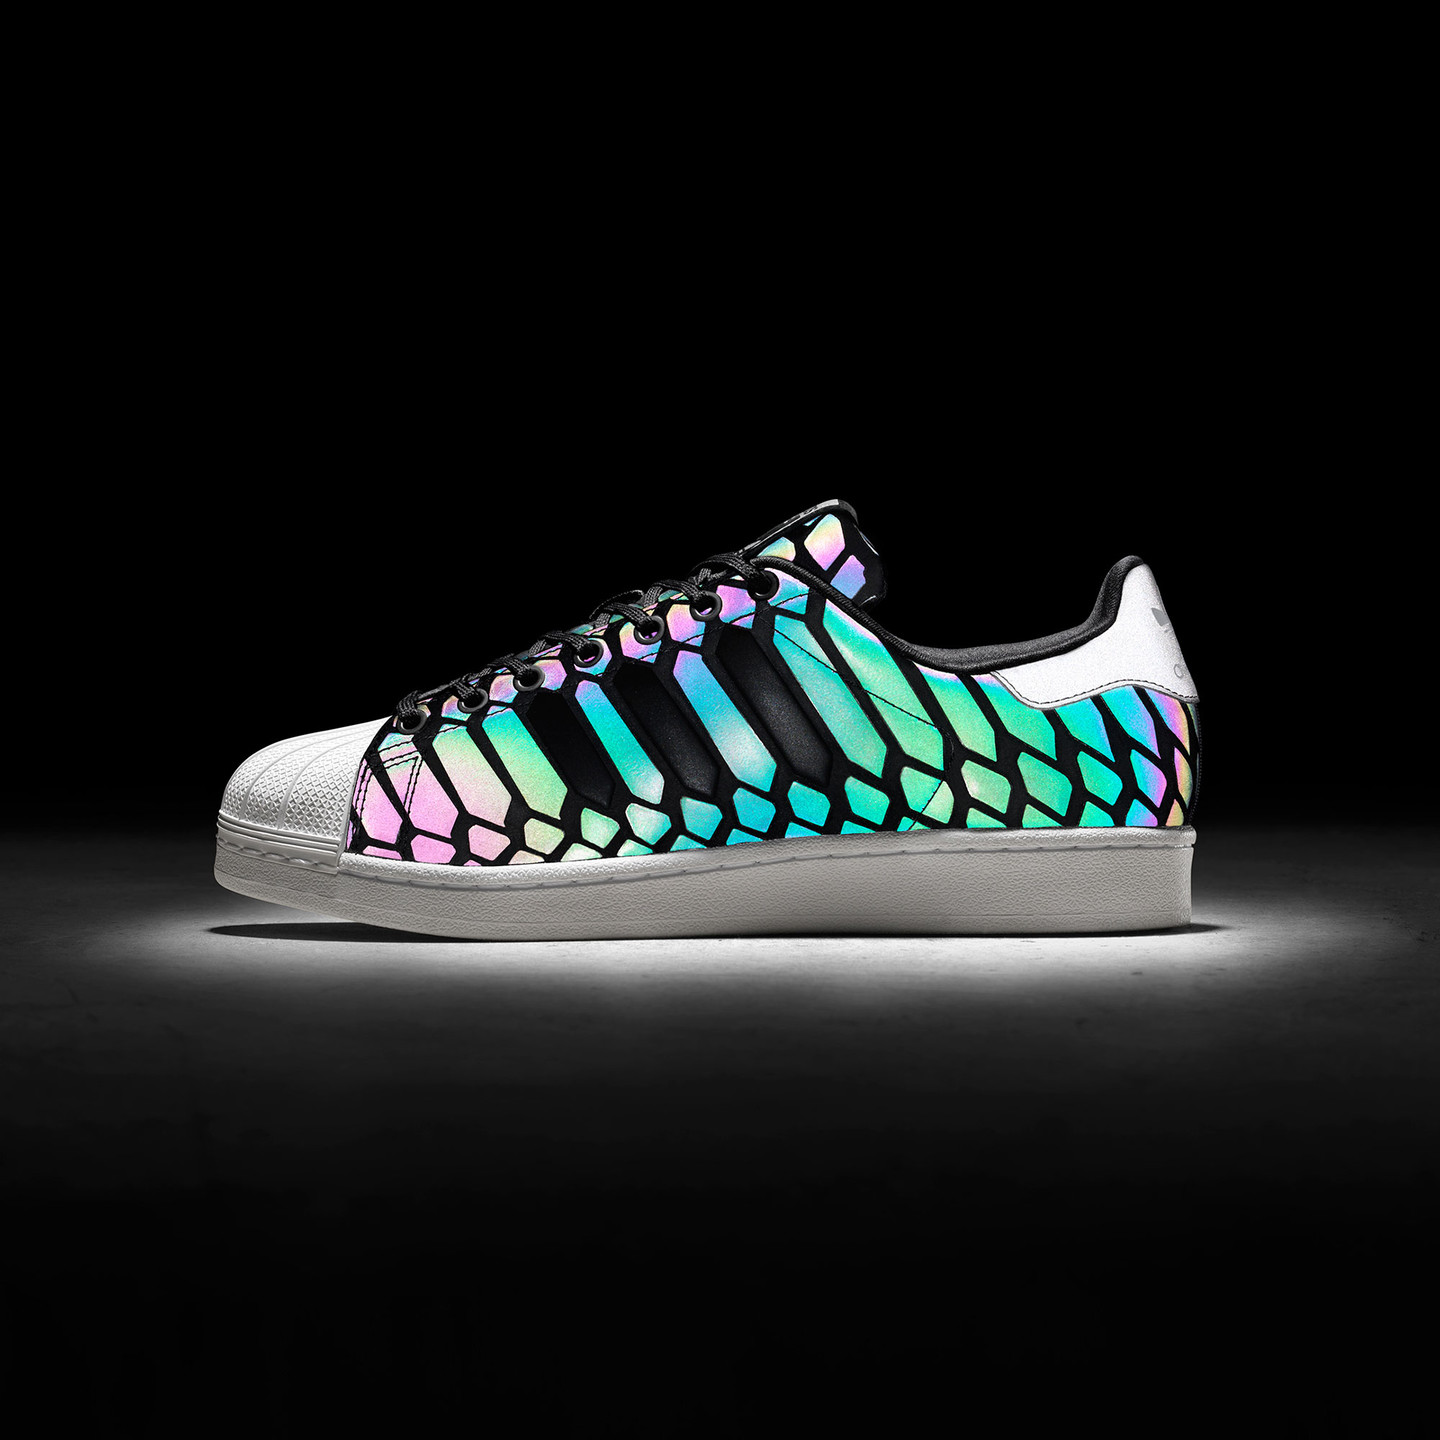 Adidas Superstar Xeno Pack Cblack / Supcol / Ftwwht D69366-40.66